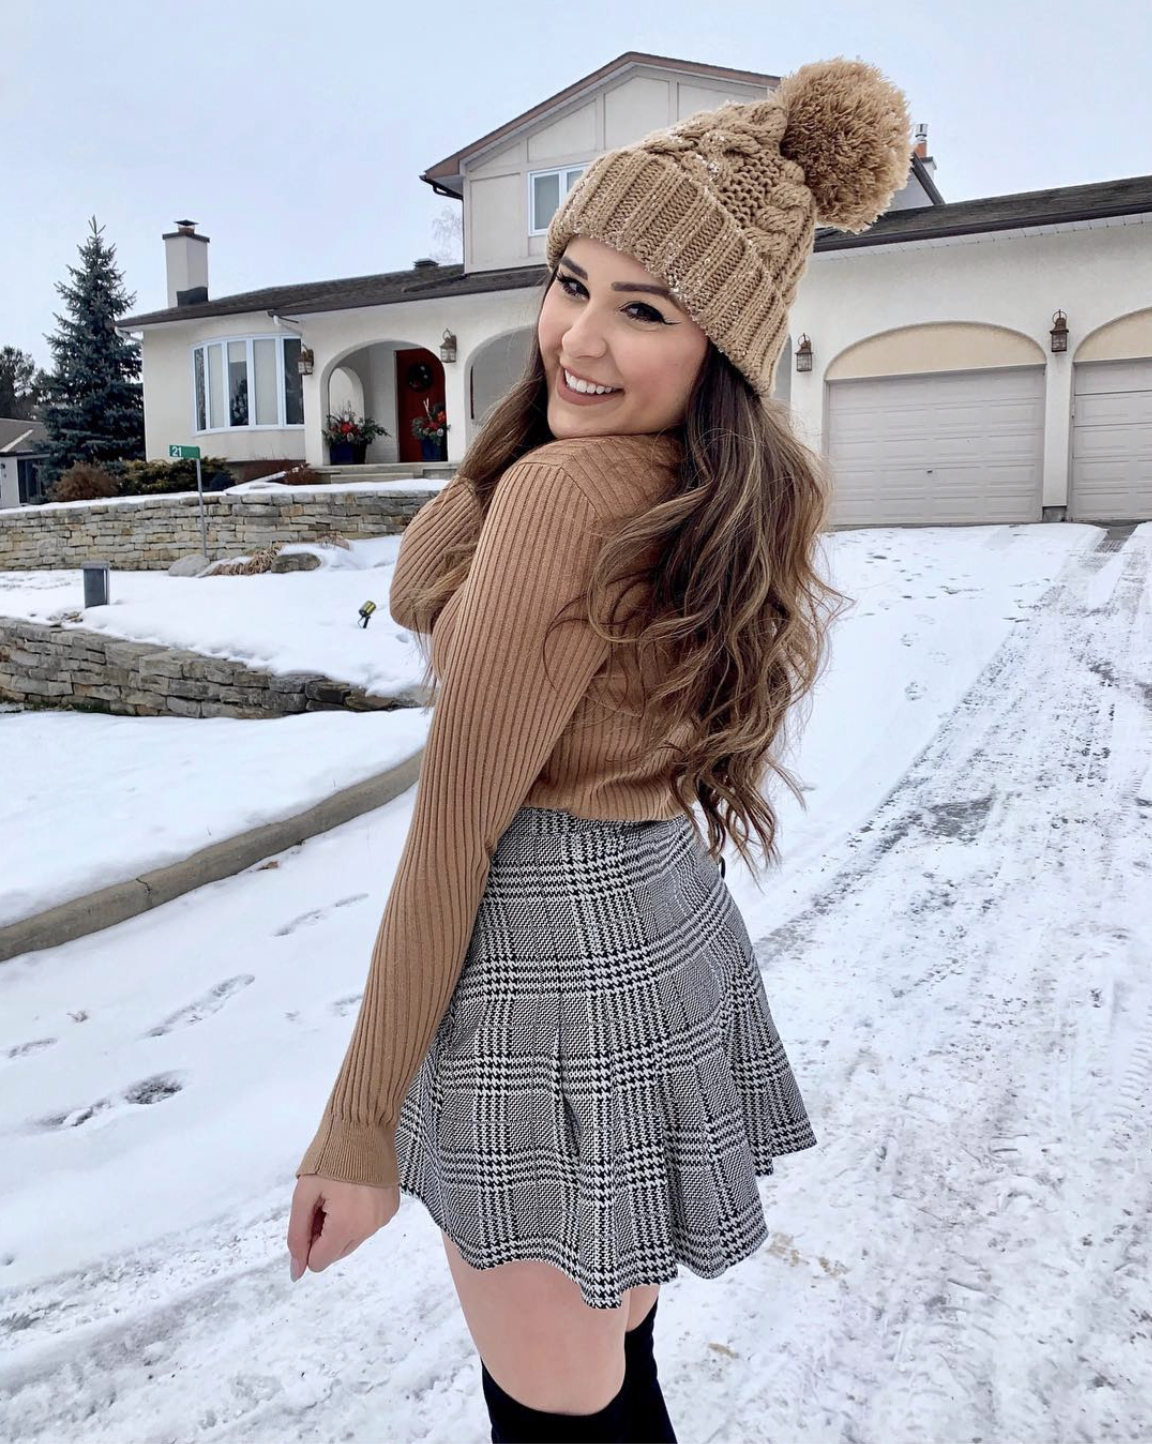 f2091c7d475c0 Mash Elle beauty blogger | where to find the best beanies | how to wear  beanies | cute beanies for winter | pom pom winter beanies | winter outfit  | snow ...